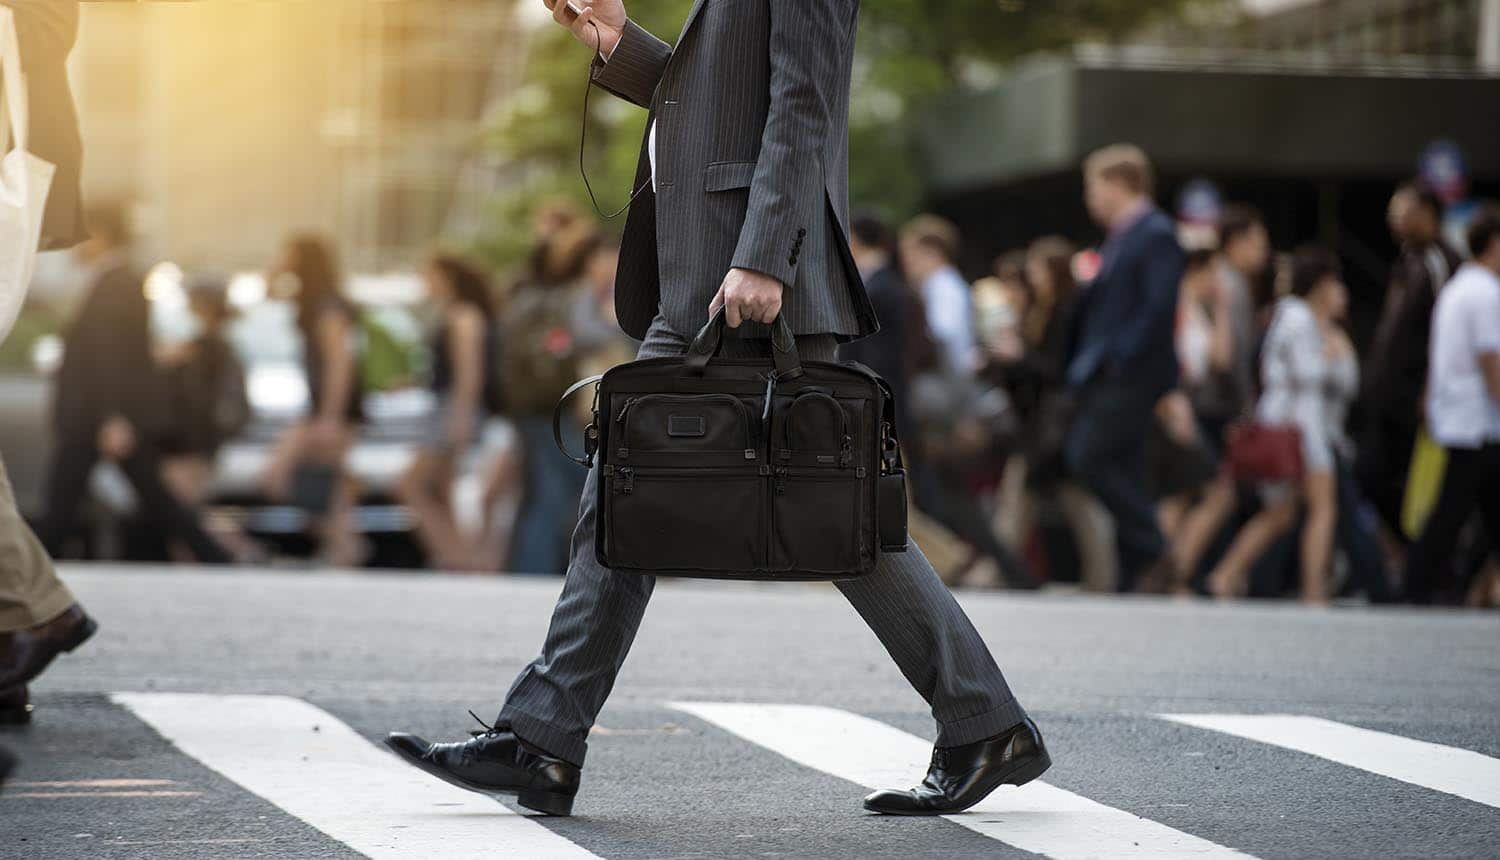 Business executive crossing the street using smatphone showing threat of BEC scams